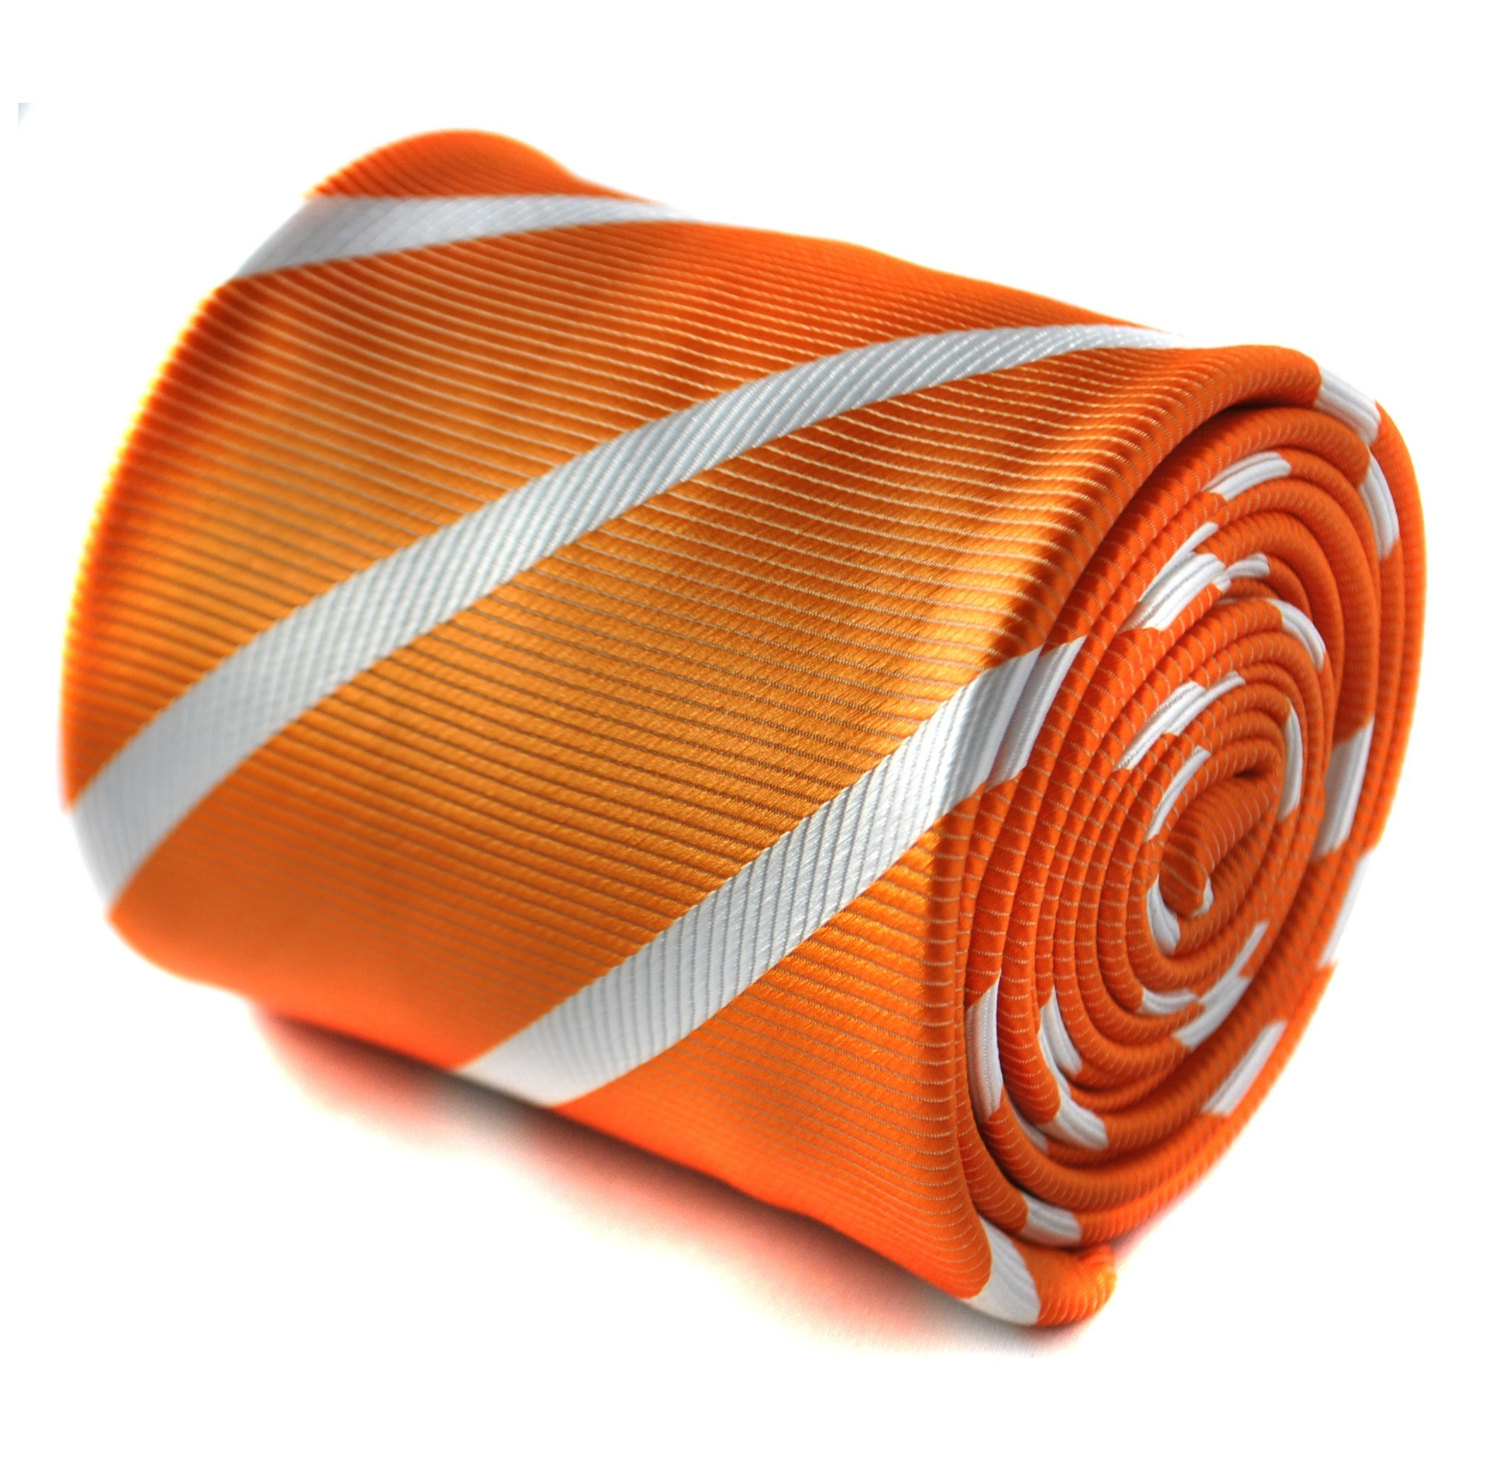 orange and white club striped tie with floral design to the rear by Frederick Th